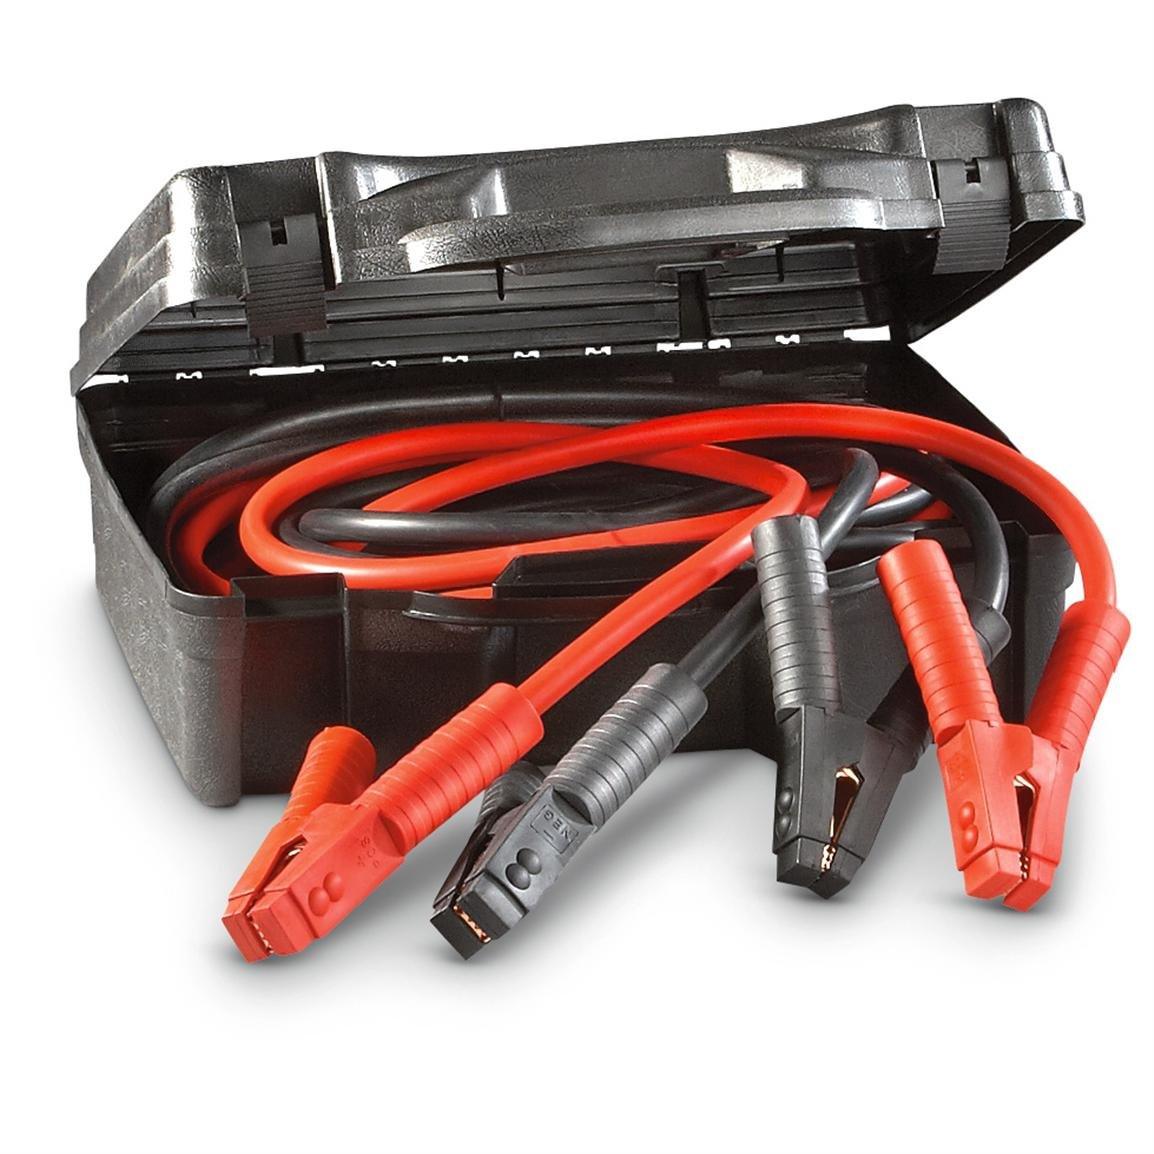 Katzco Jumper Cables, Car Battery Charger - Heavy Duty And Durable Booster Cable, 1 Gauge 600 Amp Clamp And Cables, 25 Feet Long, With A Hard Case by Katzco